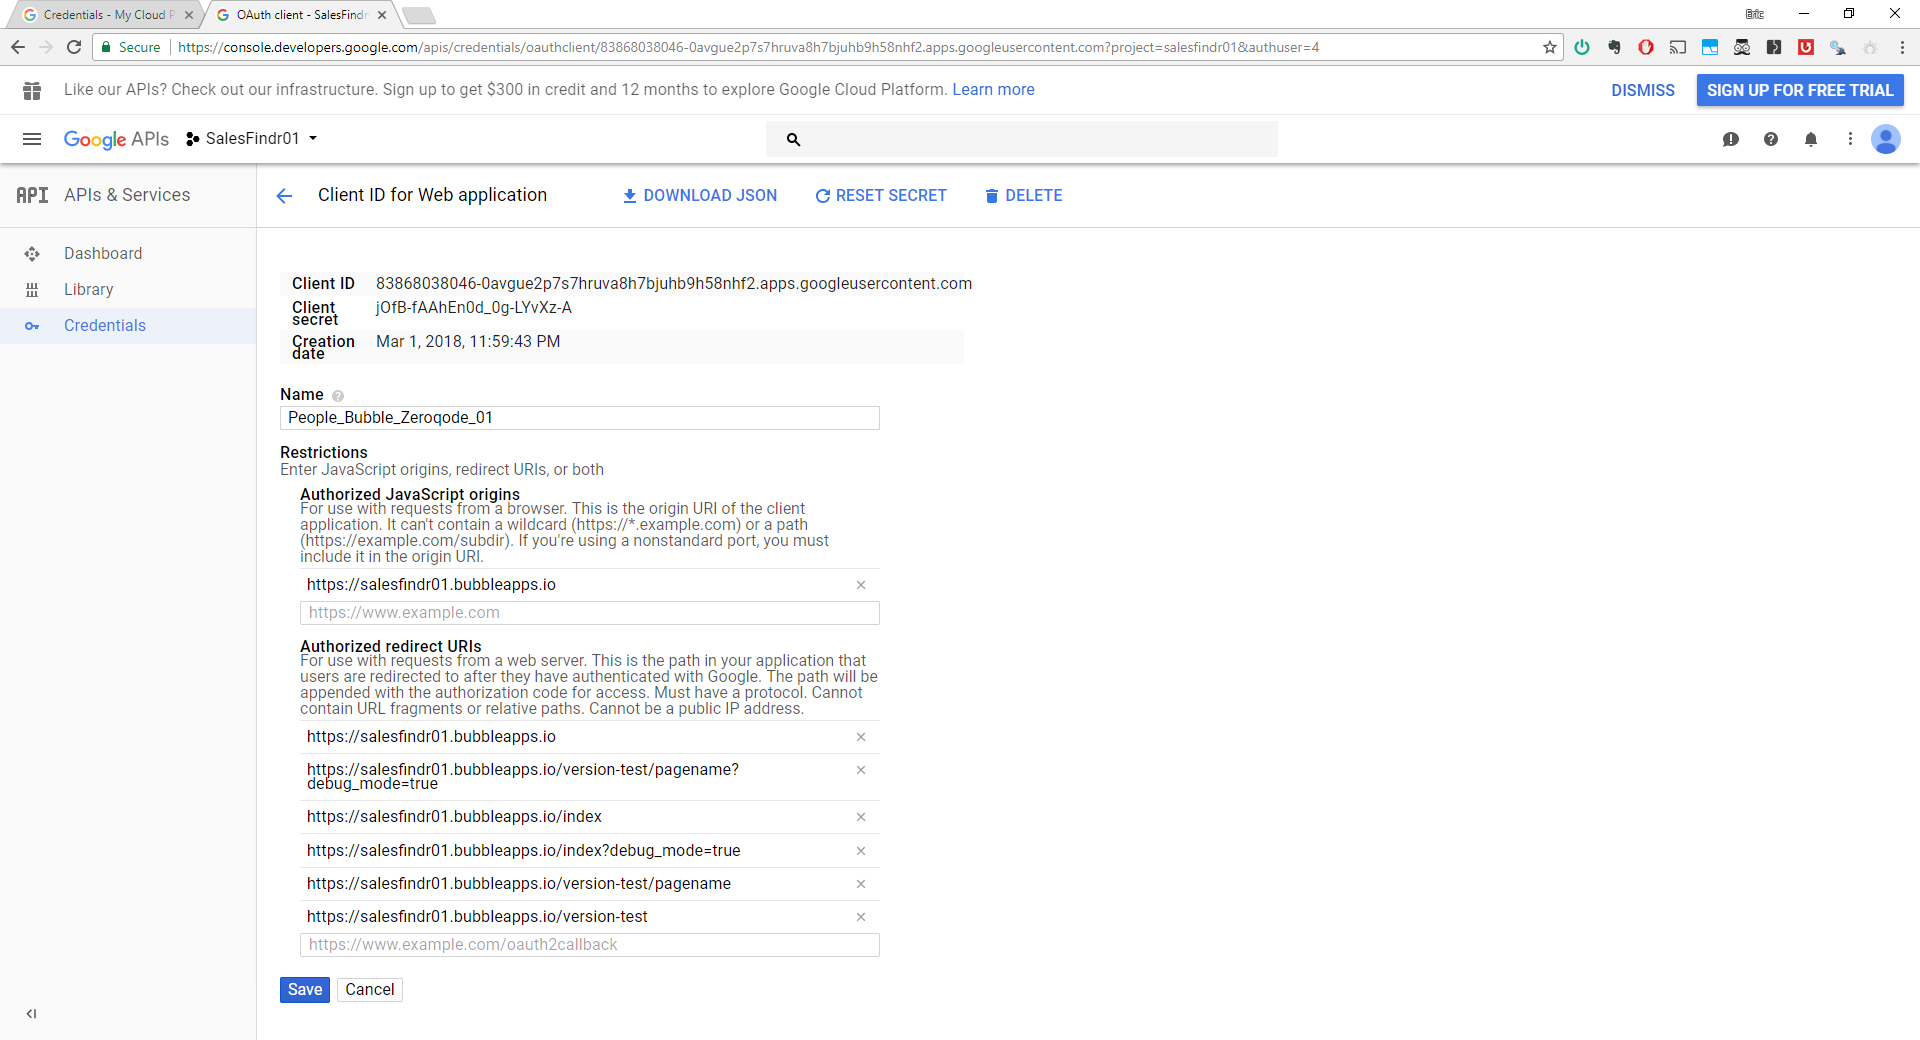 Can't authenticate with Google People API - Plugins